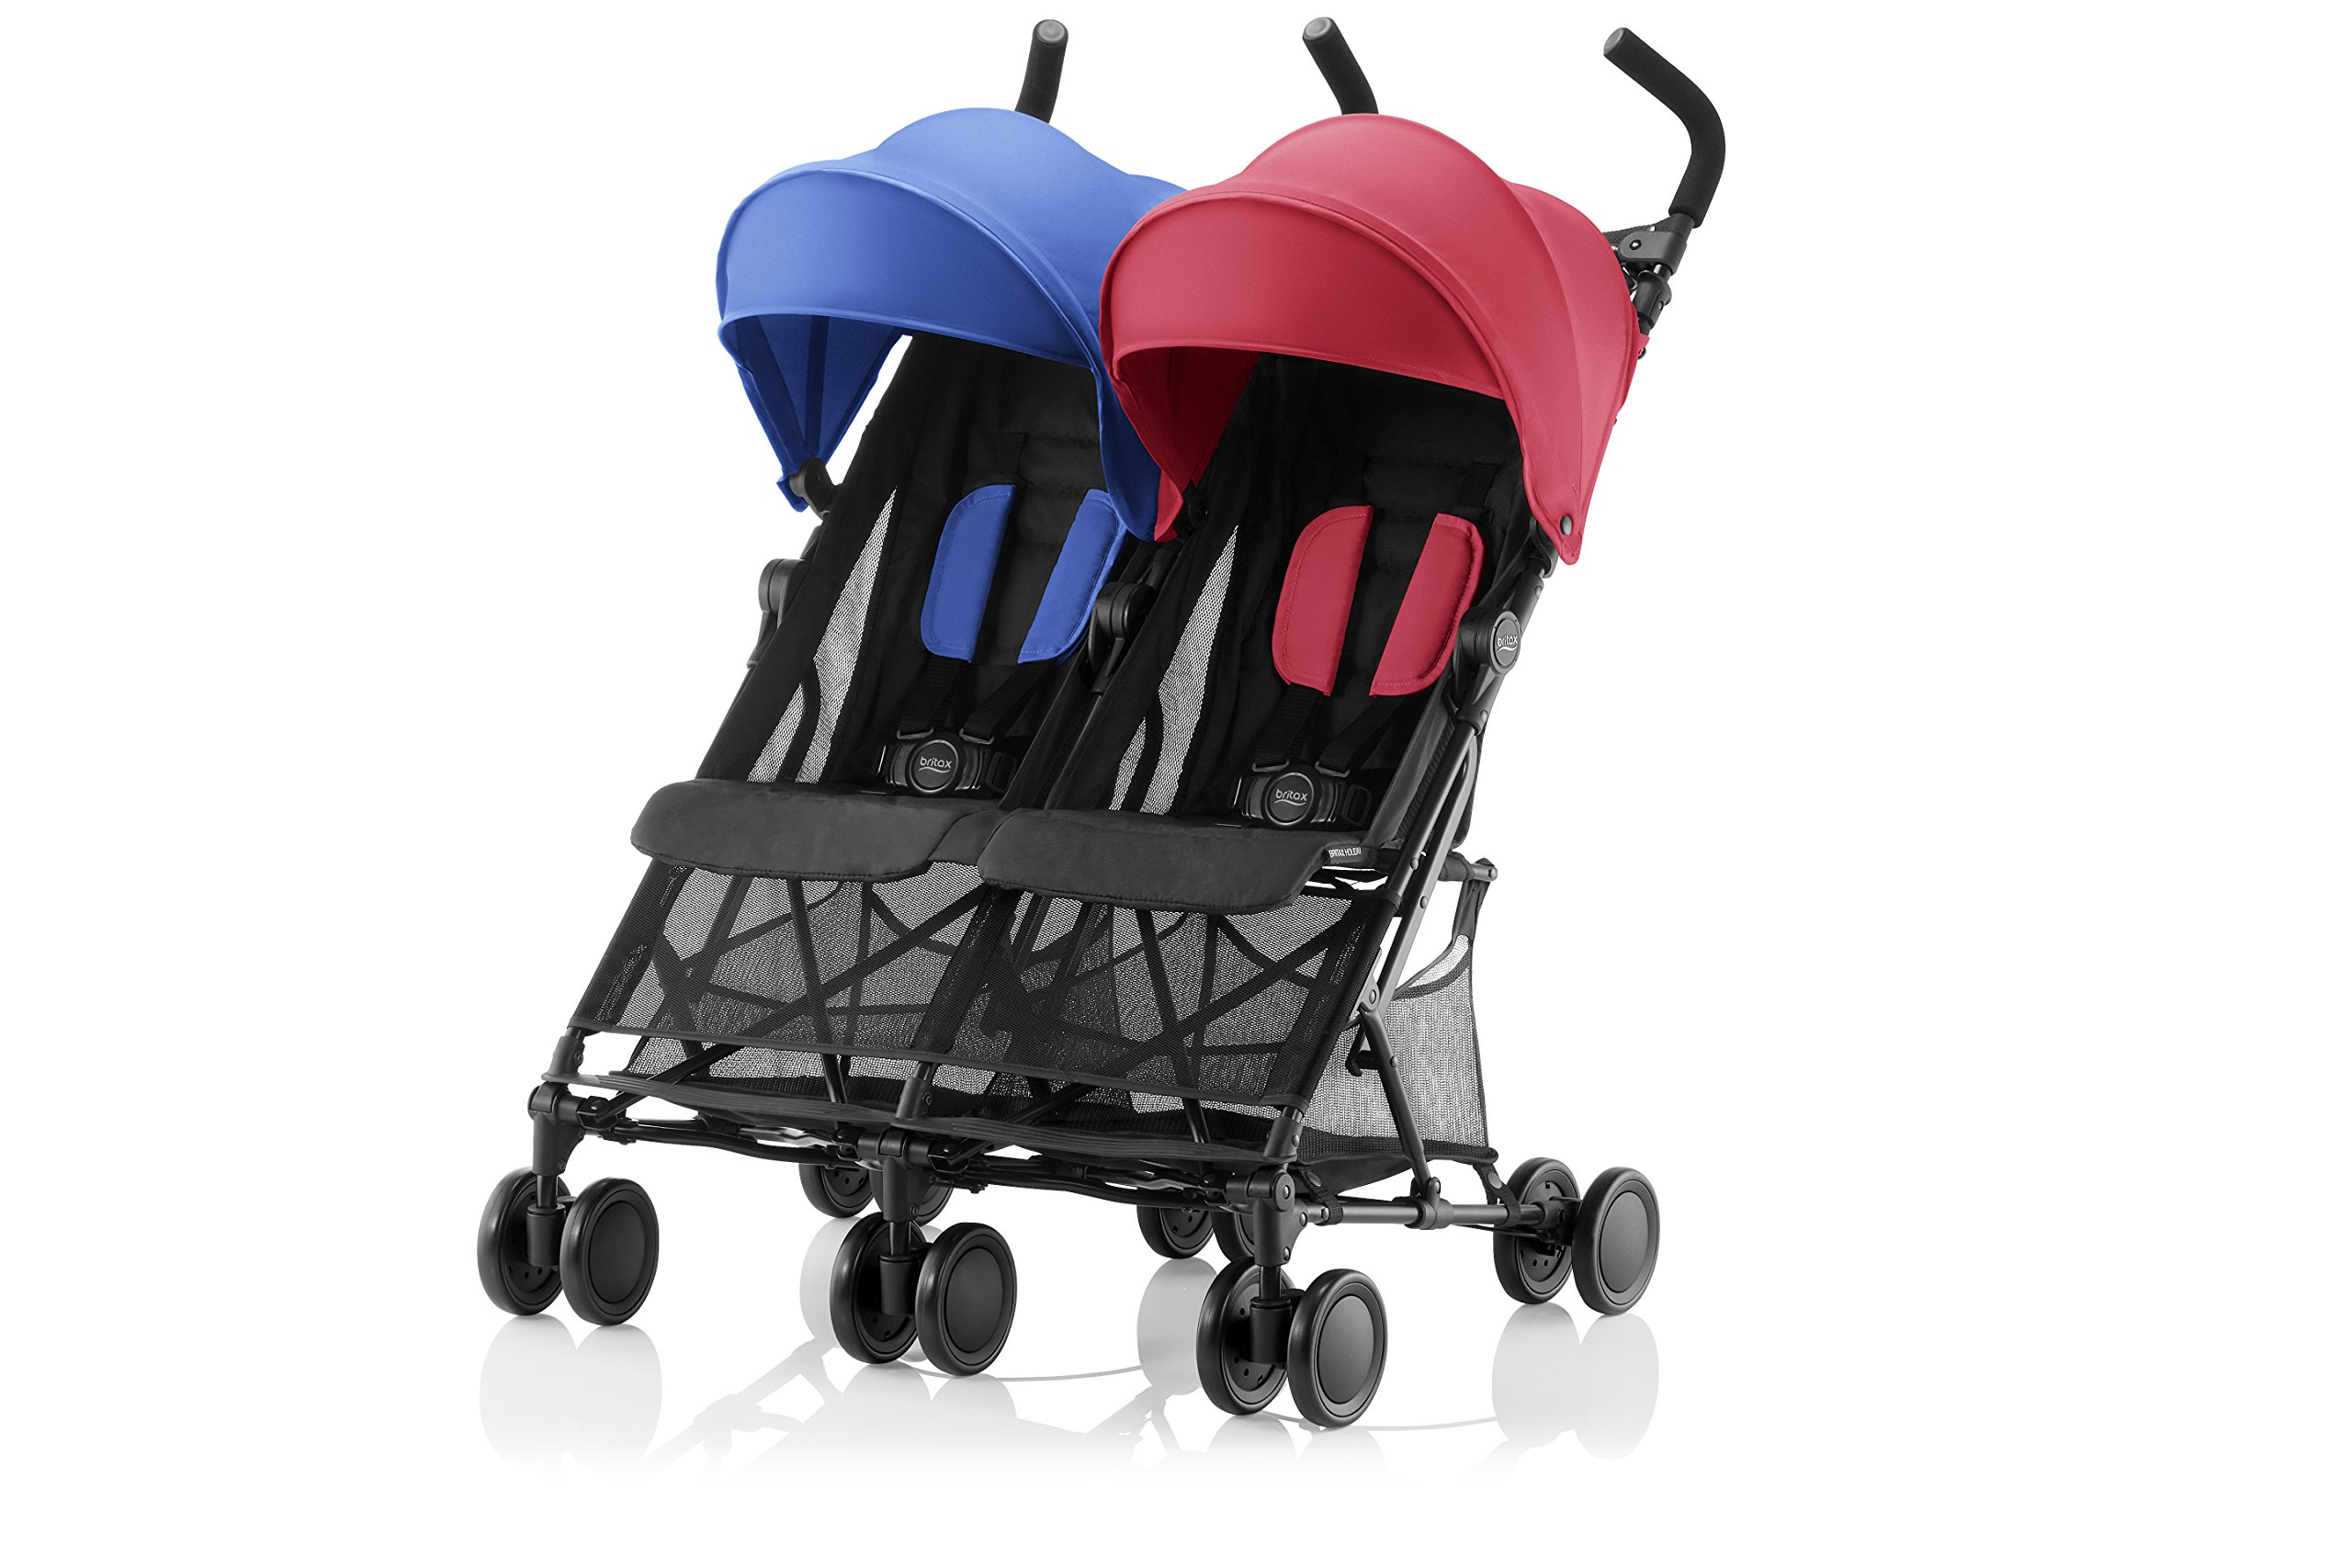 Britax Römer HOLIDAY DOUBLE Pushchair (6 months - 15 kg|3 years ) - Red/Blue  Reclining backrest - you can make your child's journey even more convenient with the reclining backrest. the backrest can be reclined independently which gives you the flexibility to provide a relaxing sleeping position for each child individually. Seat unit with mesh panels - to keep your child comfortable on hot days, the seat unit has mesh panels on the sides and top of the seat unit for better air circulation. Large hood with sun visor - when taking a nice relaxing stroll in the sun, the large hoods with sun visor are independently adjustable and provide protective shade to your little passenger. 1